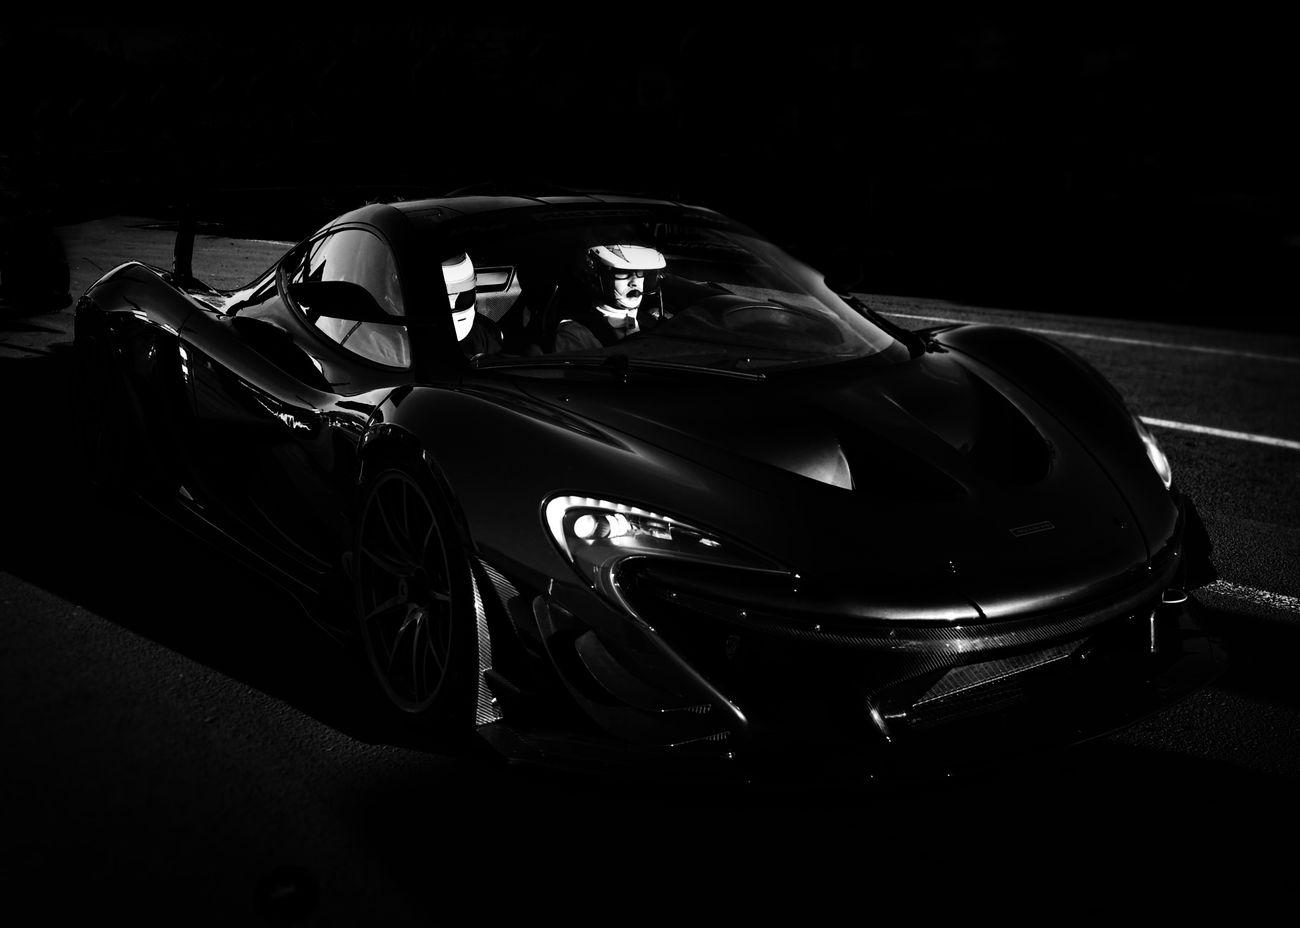 Black & White Black Background Blackandwhite Car Carporn Cars Check This Out Close-up Focused Lines And Shapes Monochrome Monochrome Photography Motorsport No Edit No Fun Shapes And Forms Shapes And Lines The Drive